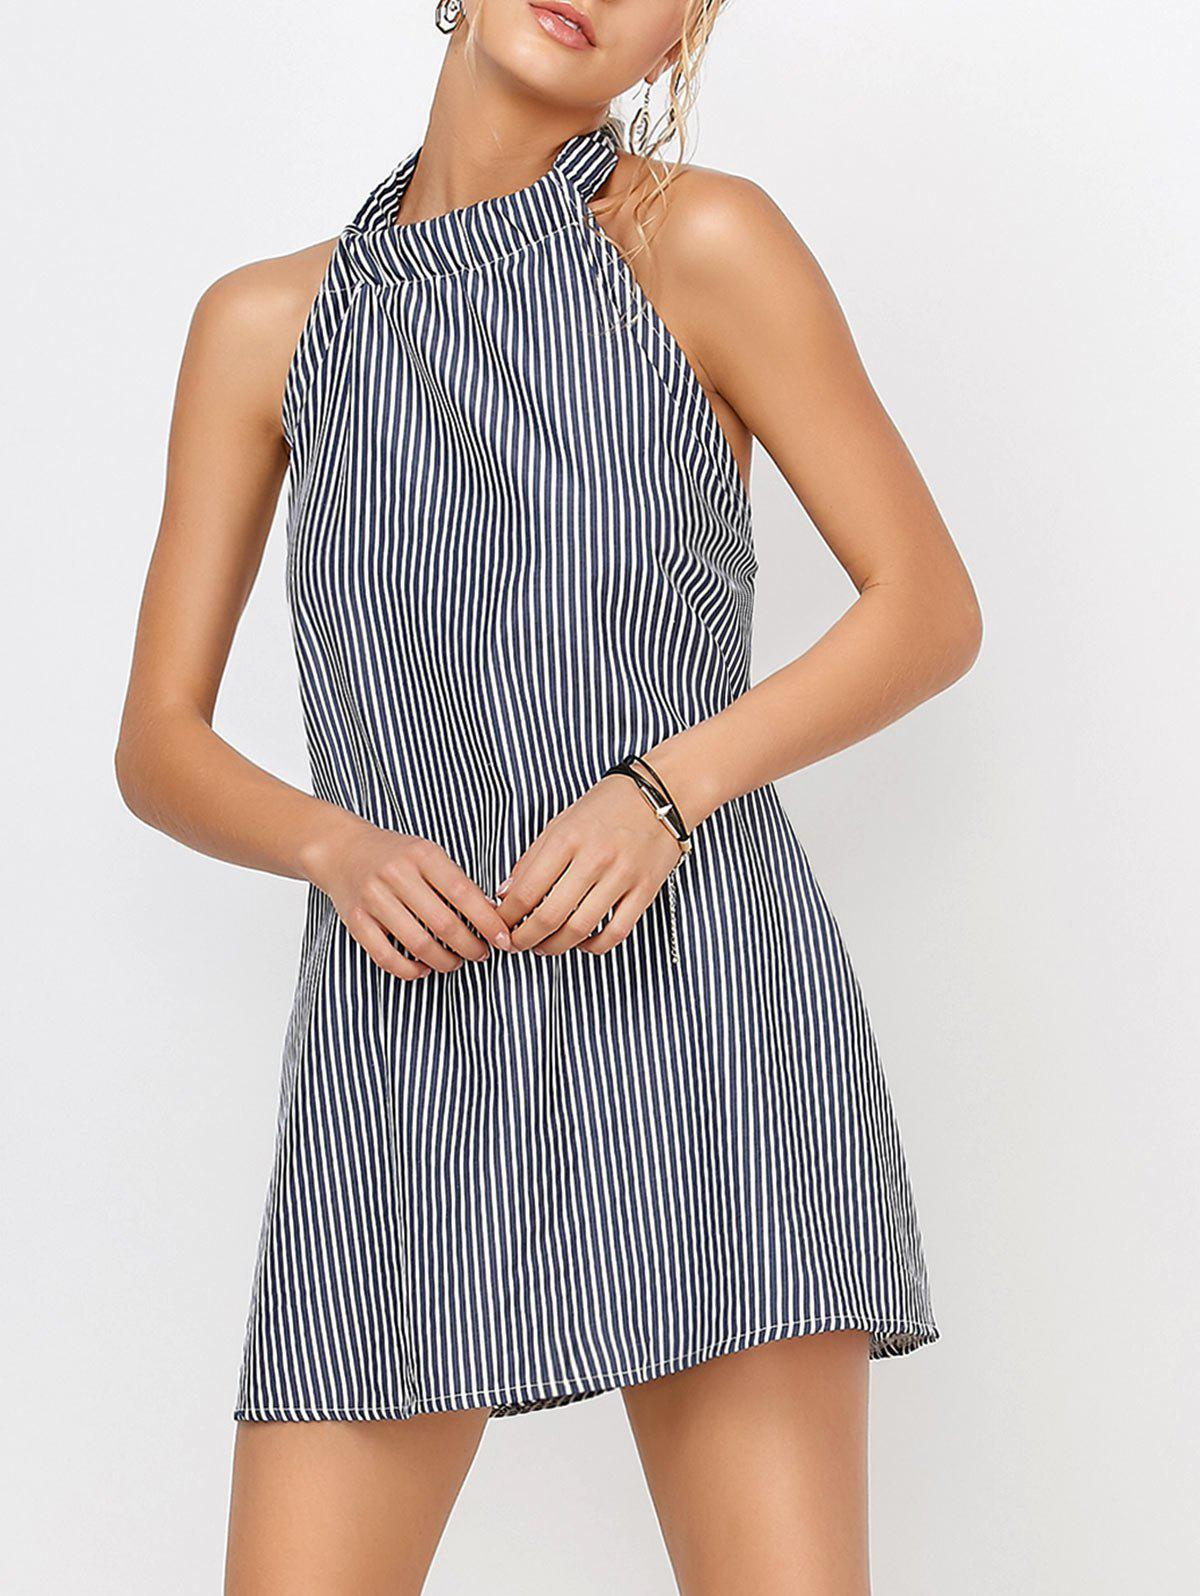 Discount Backless Halter Short Striped Shift Dress